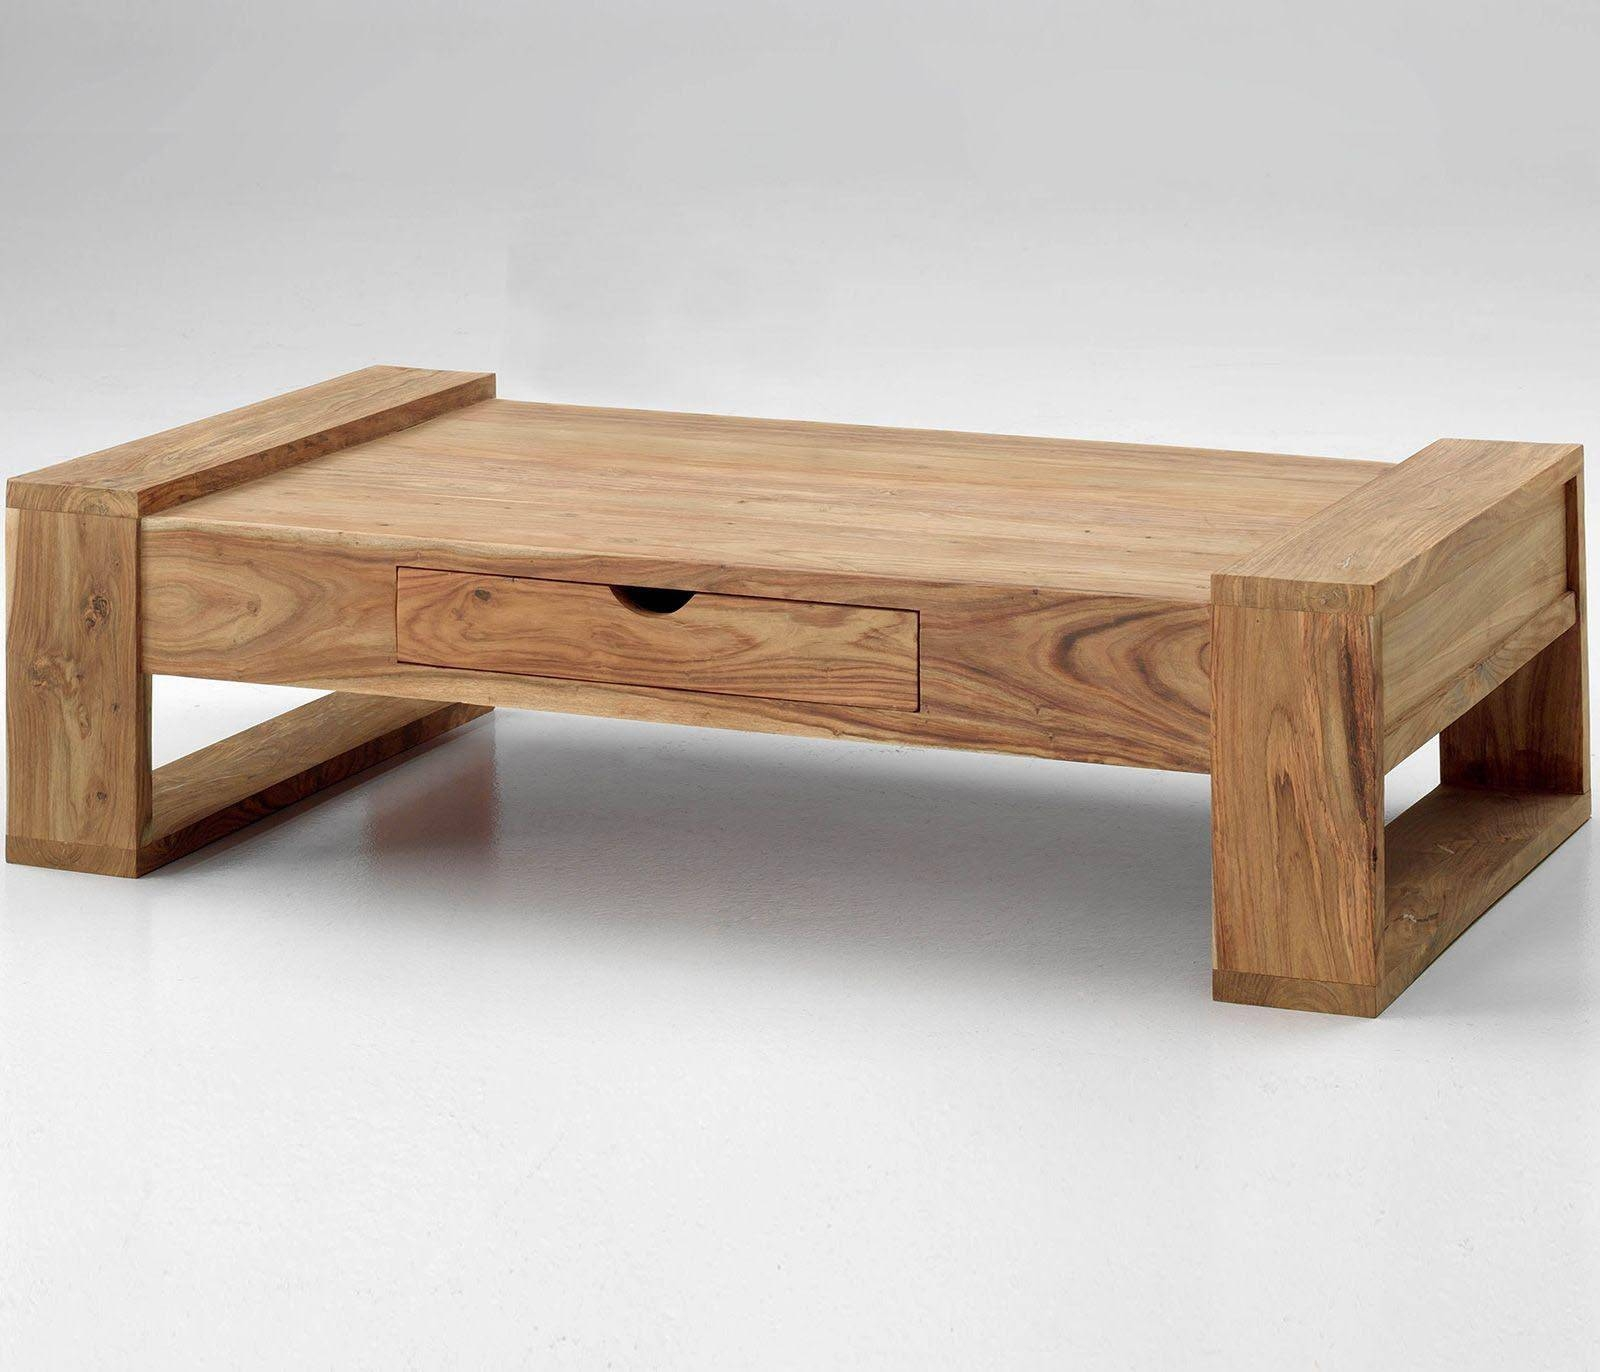 Square Low Coffee Table | Coffee Table Design Ideas Within Square Low Coffee Tables (View 18 of 20)